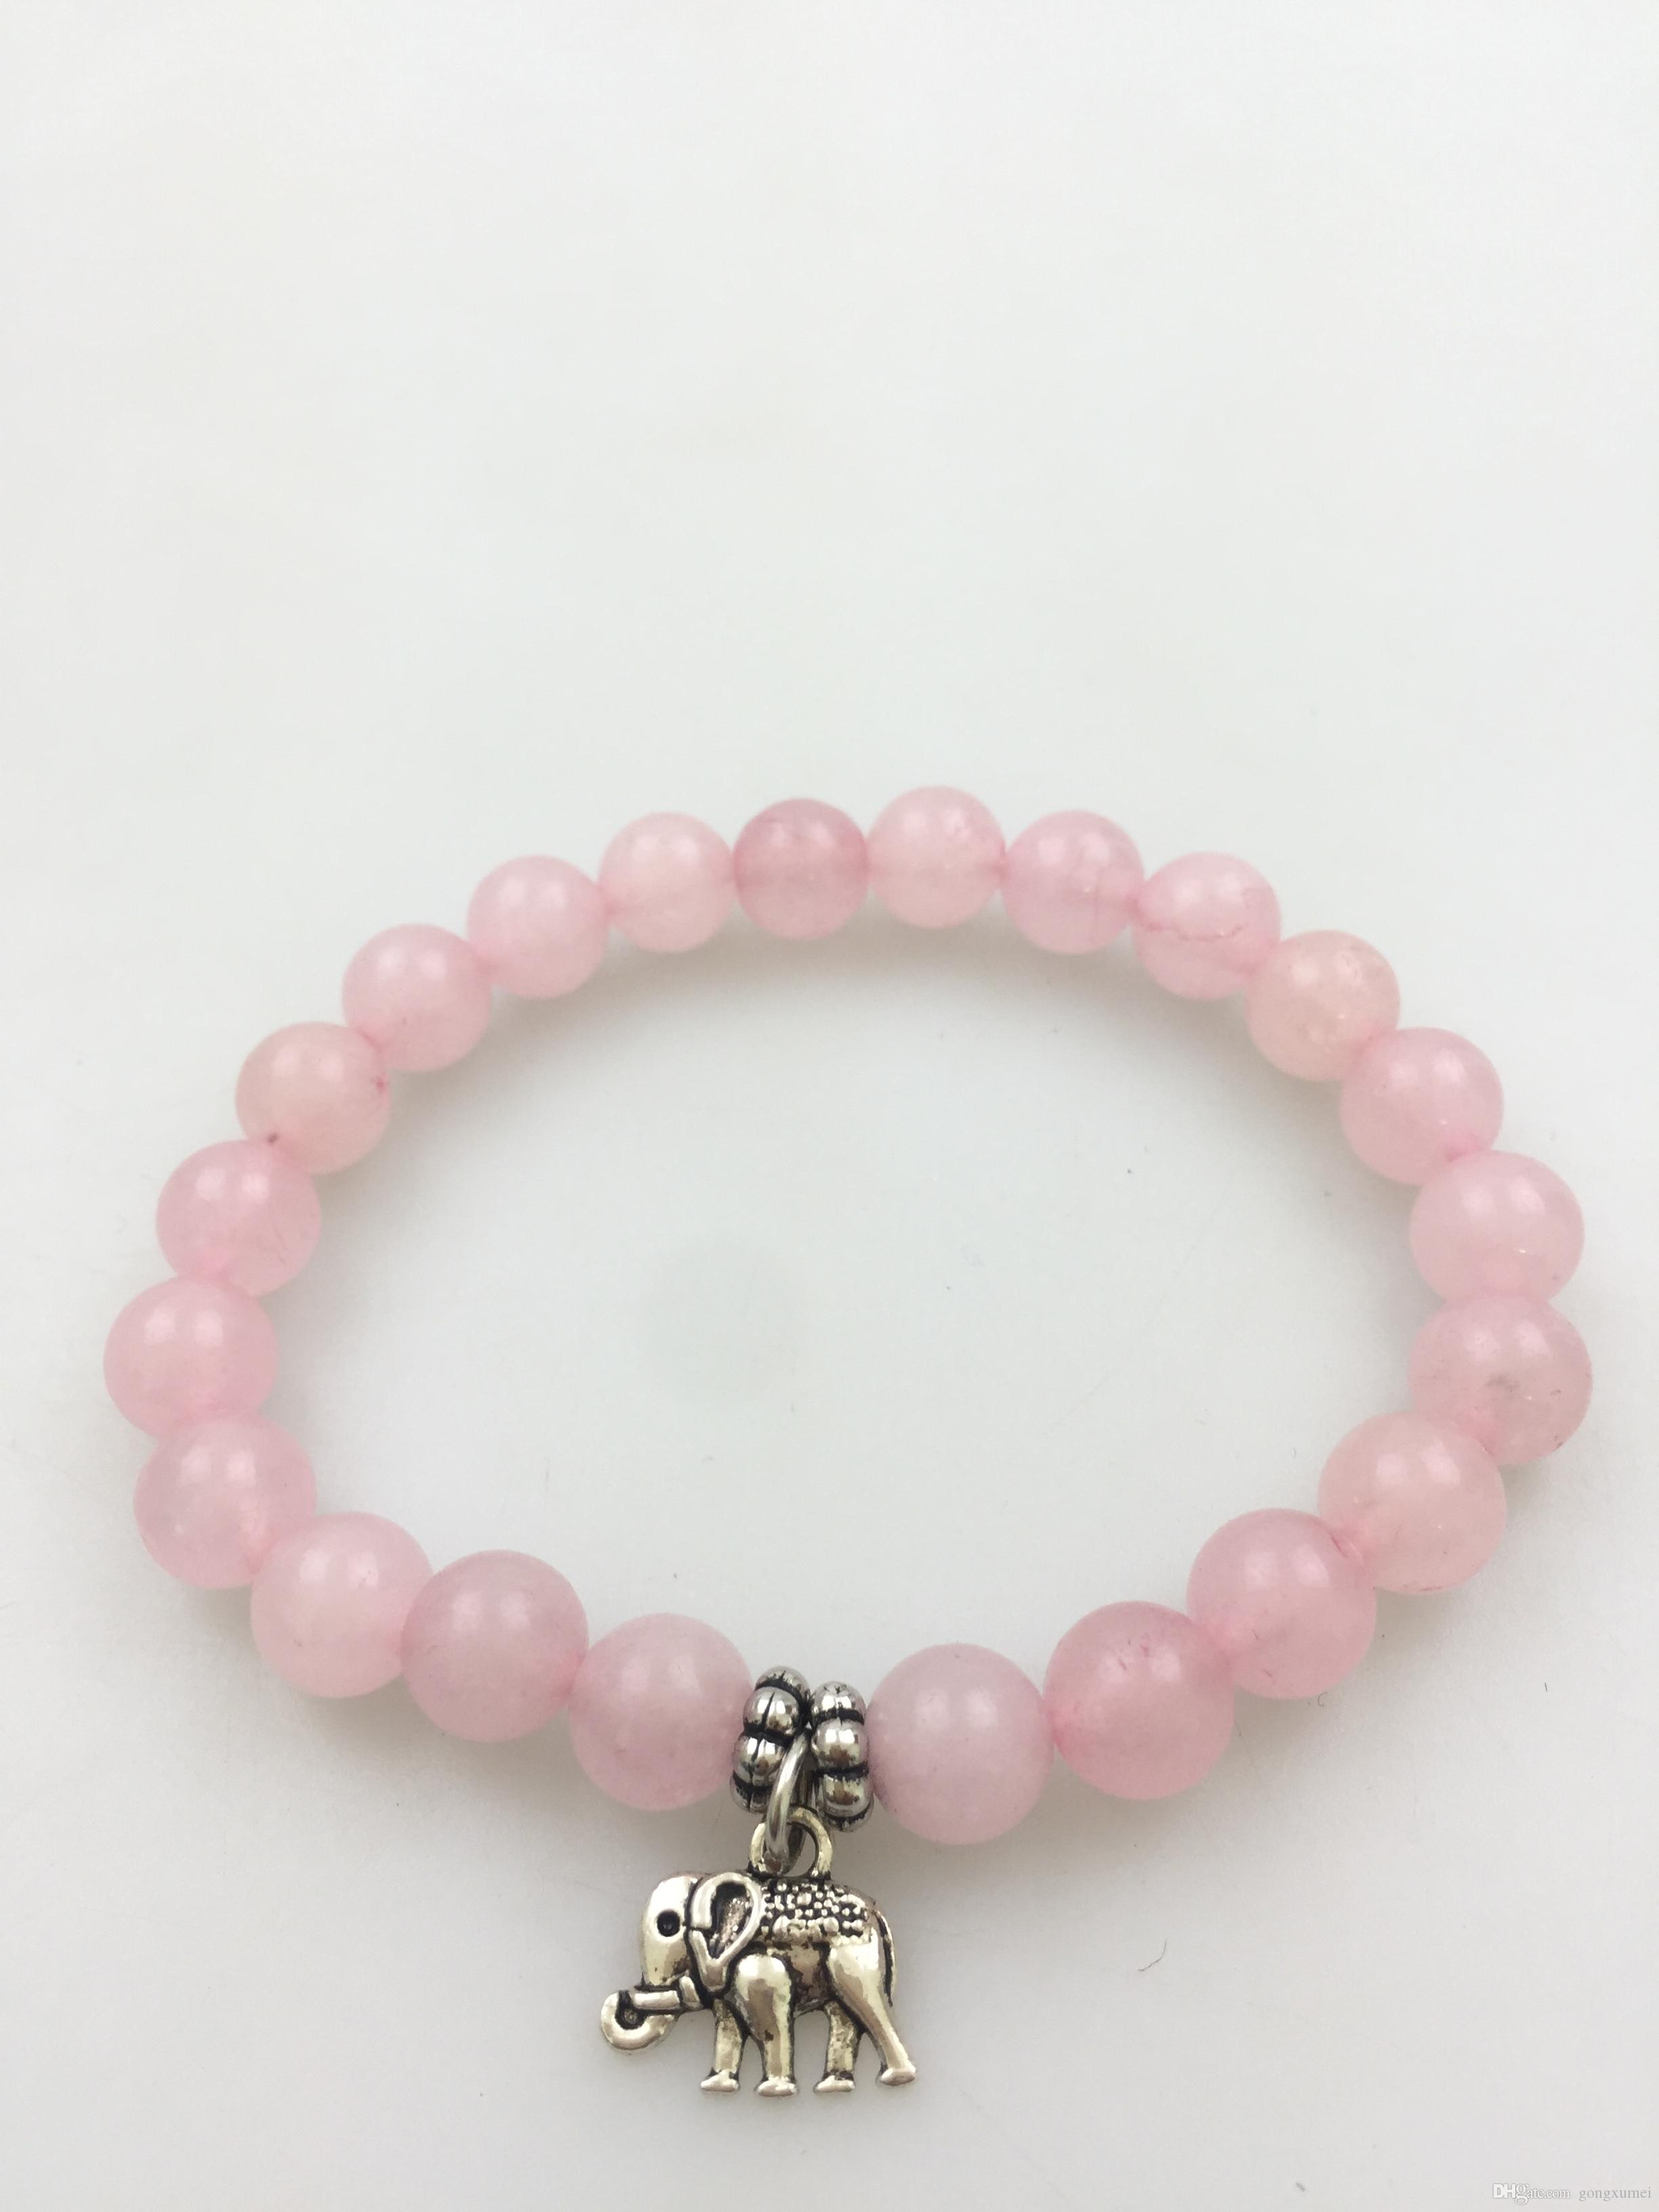 crew tanya bully beads rocks new for bullies bracelets product york